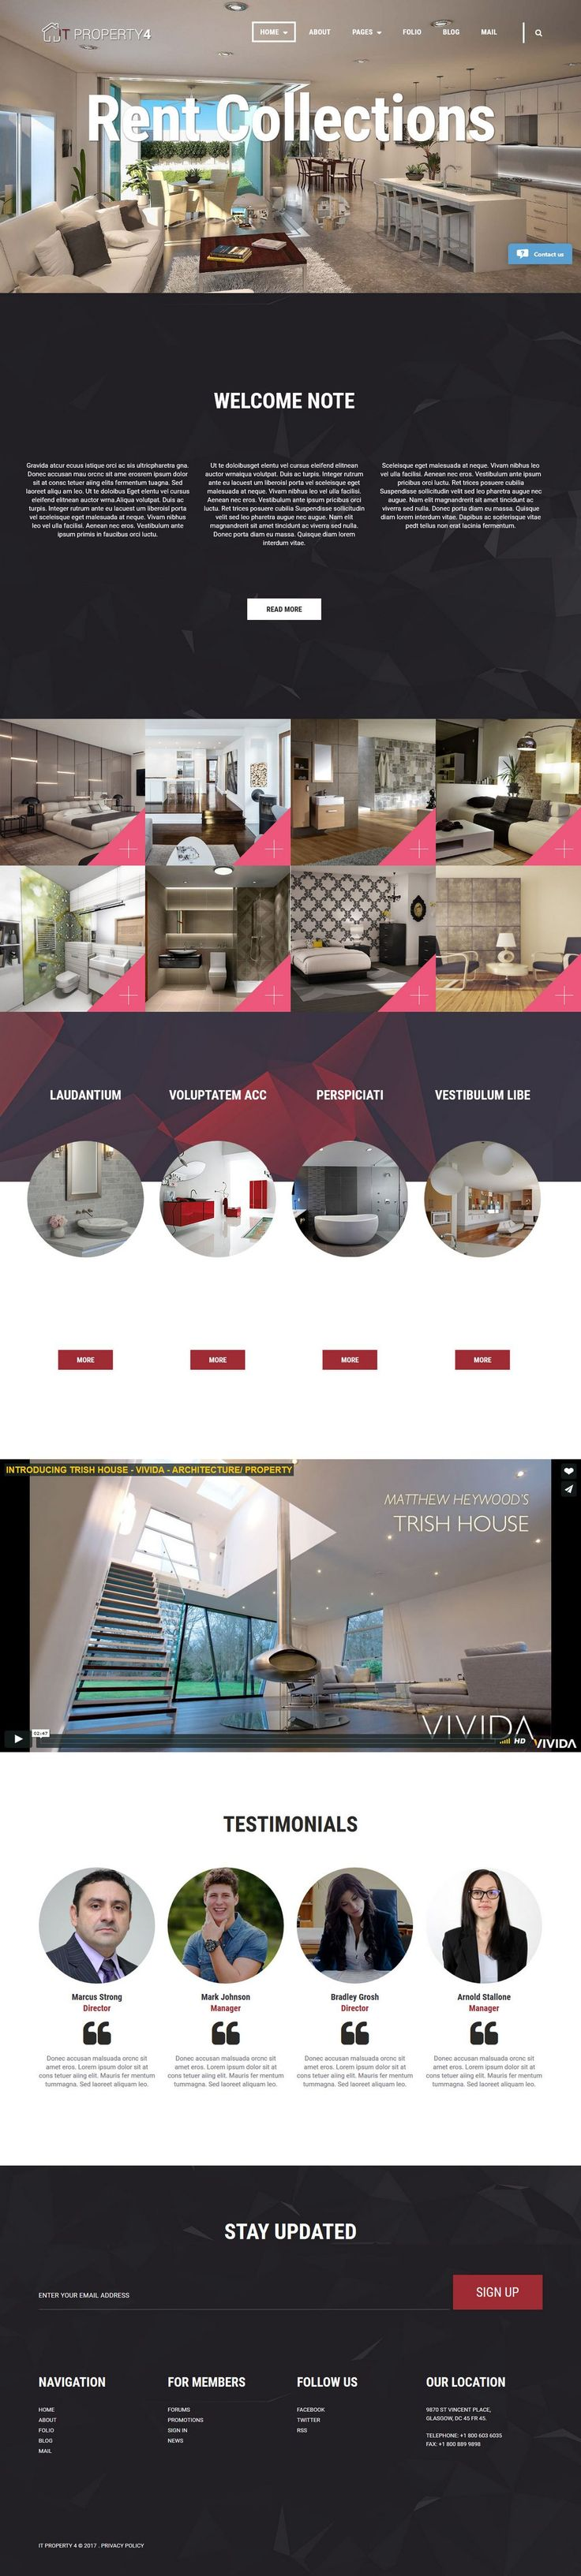 IT Property 4 Joomla Template. IT Property is a Premium Joomla Theme from ICE Theme. This template can be use for real estate property websites, agents, builders to showcase their inventories to capture their customers online.   #Joomla Real Estate Templates #Joomla Templates 2017 #Joomla Themes 2017 #Premium Joomla Templates #Premium Joomla Themes #Real Estate Joomla Templates